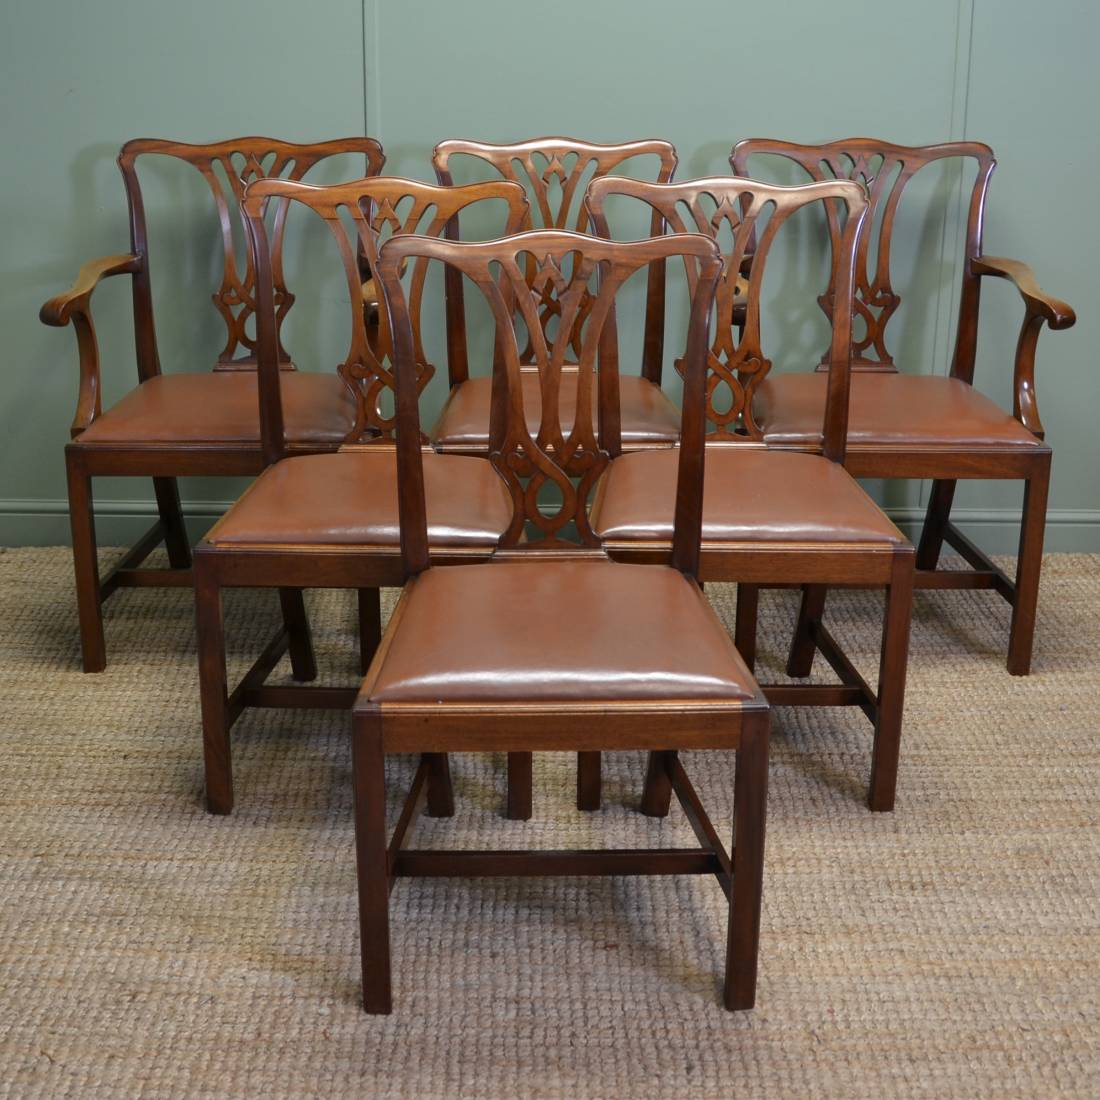 Stunning Set Of Six Edwardian Warm Mahogany Chippendale Design Antique Dinning Chairs.